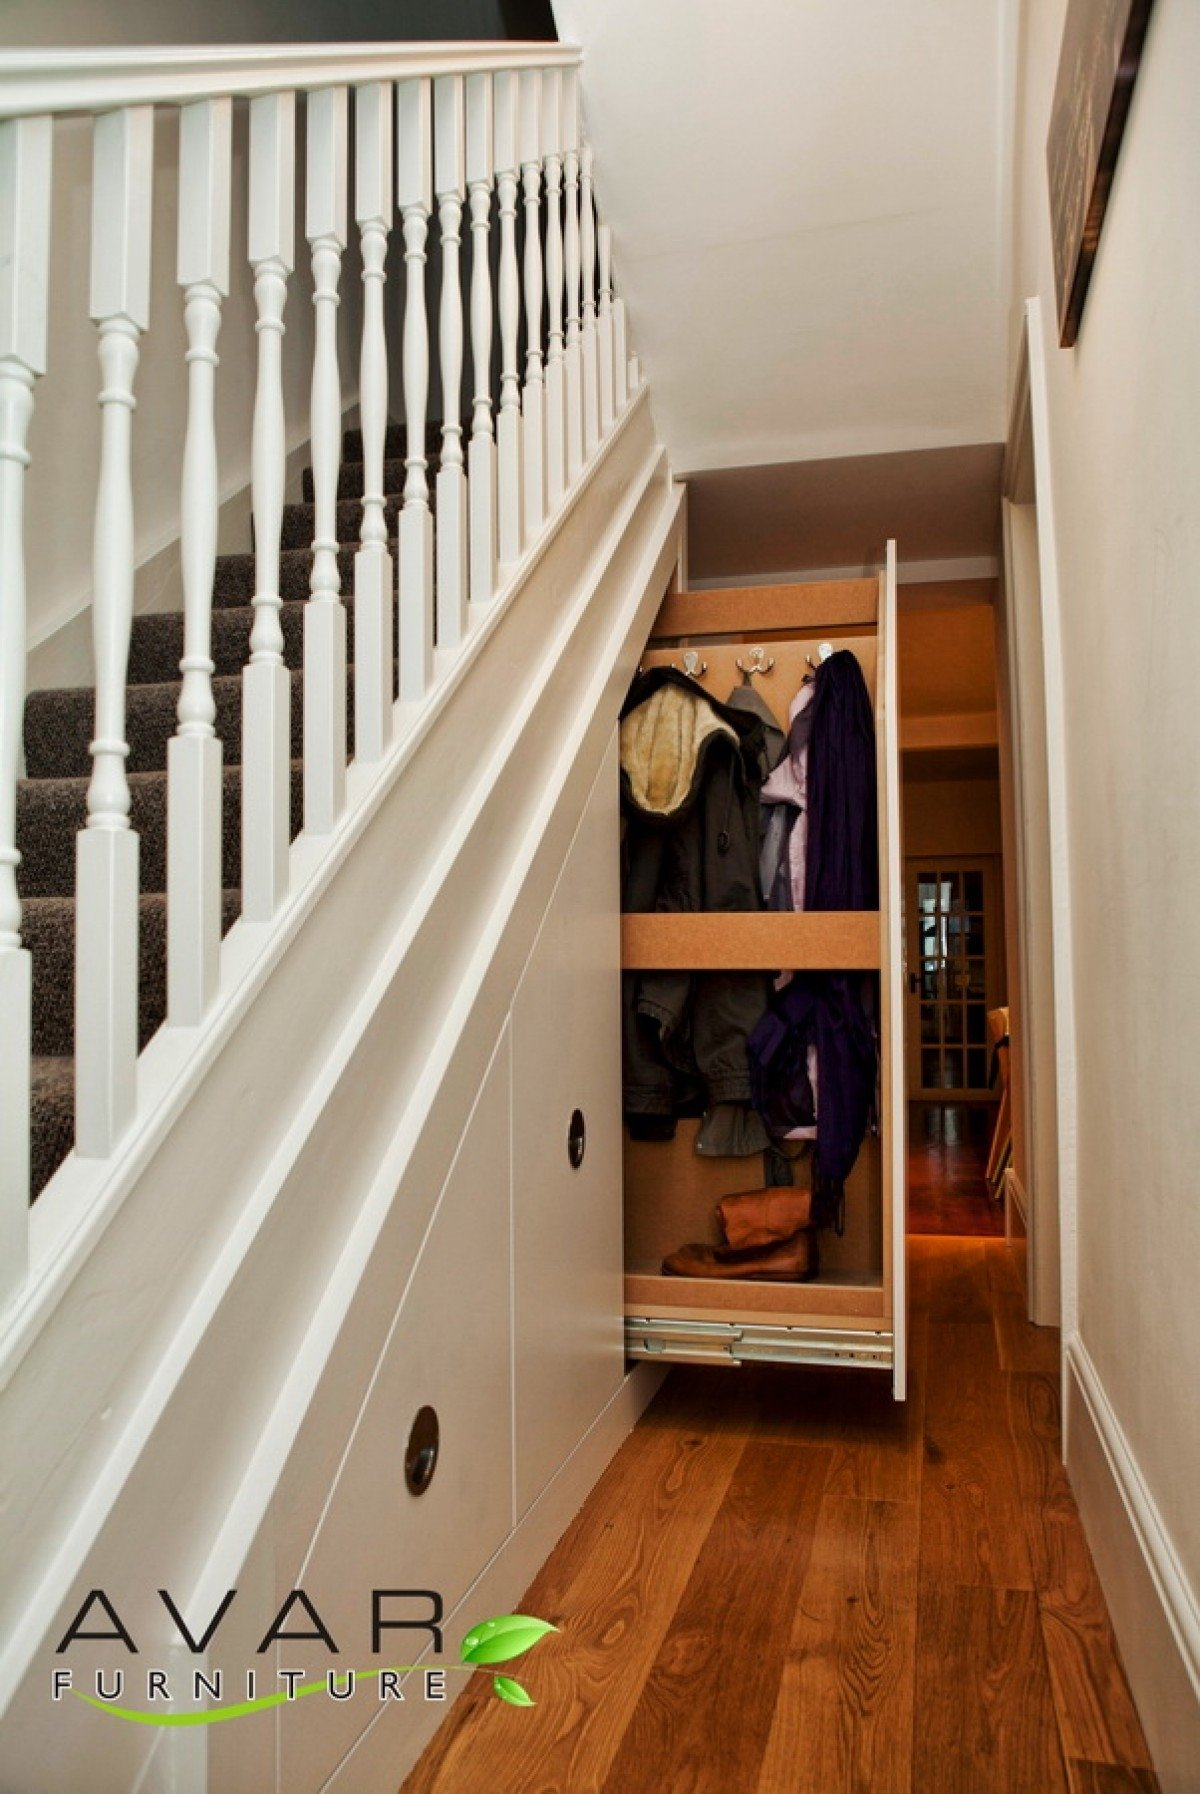 10 Most Popular Under The Stairs Storage Ideas c6b9d39dca92 under stairs storage ideas gallery 10 north london uk 1 2020